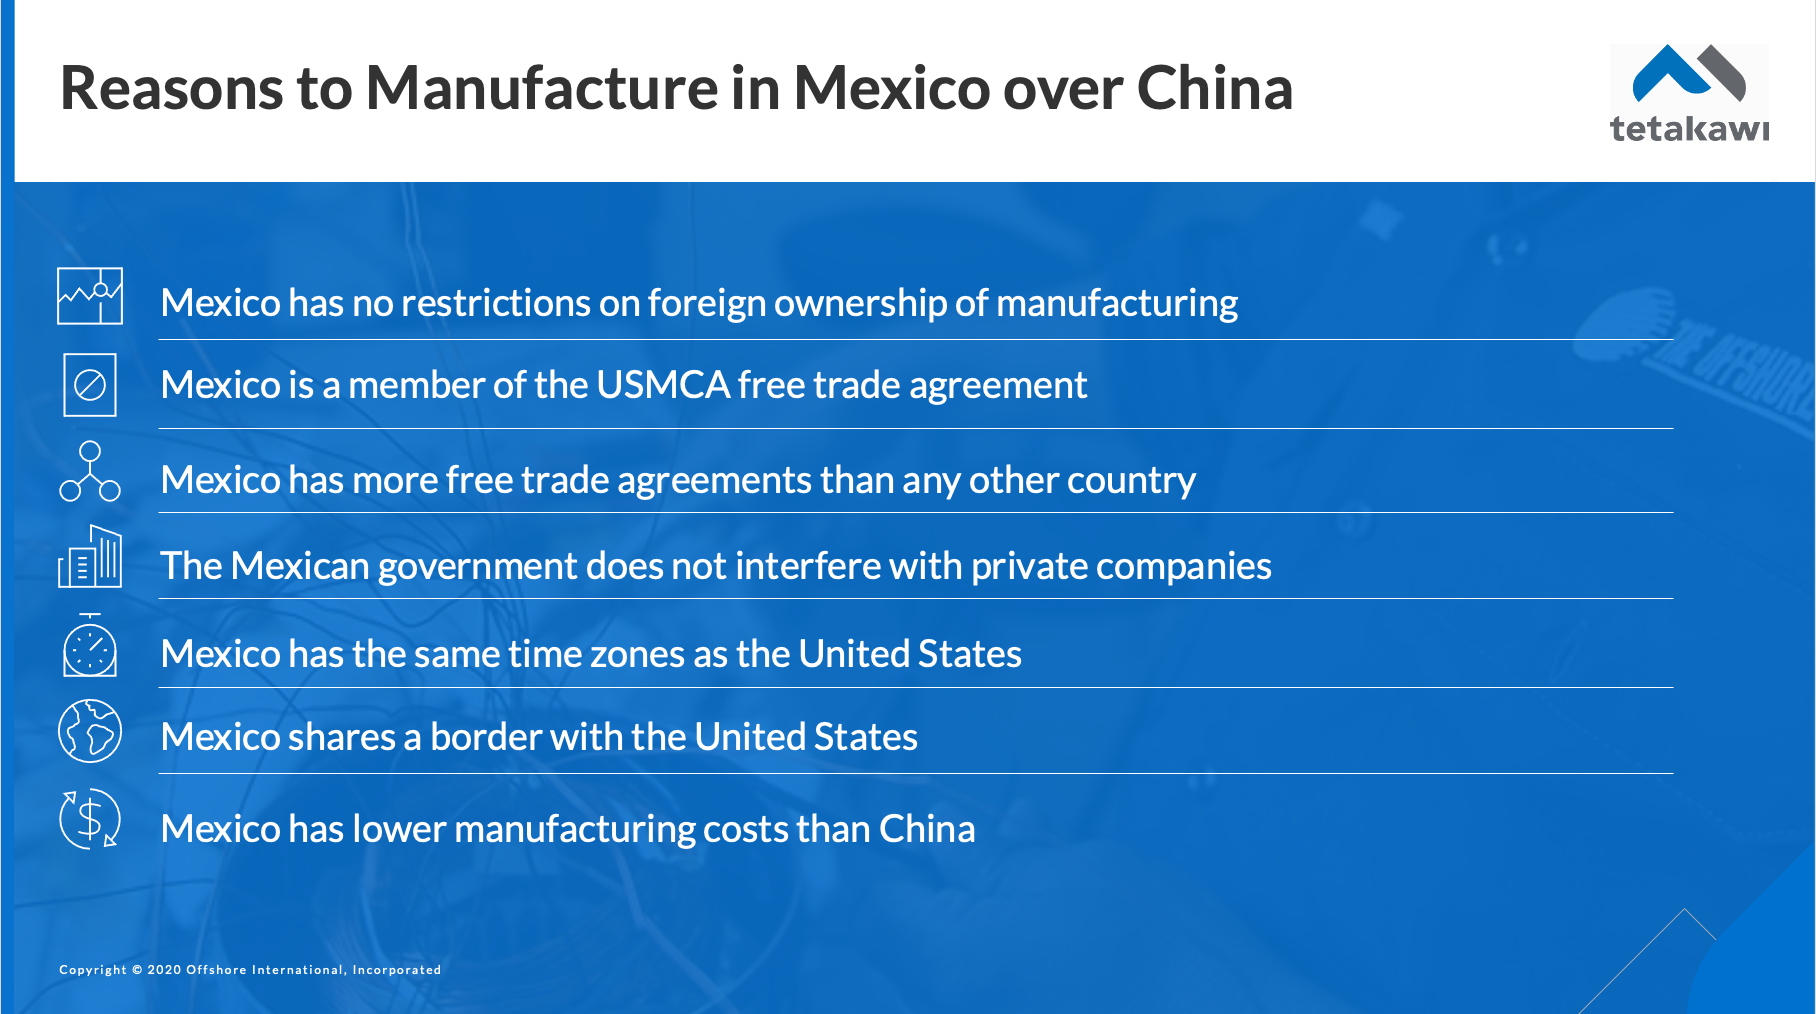 Reasons why a company should manufacture in Mexico vs China